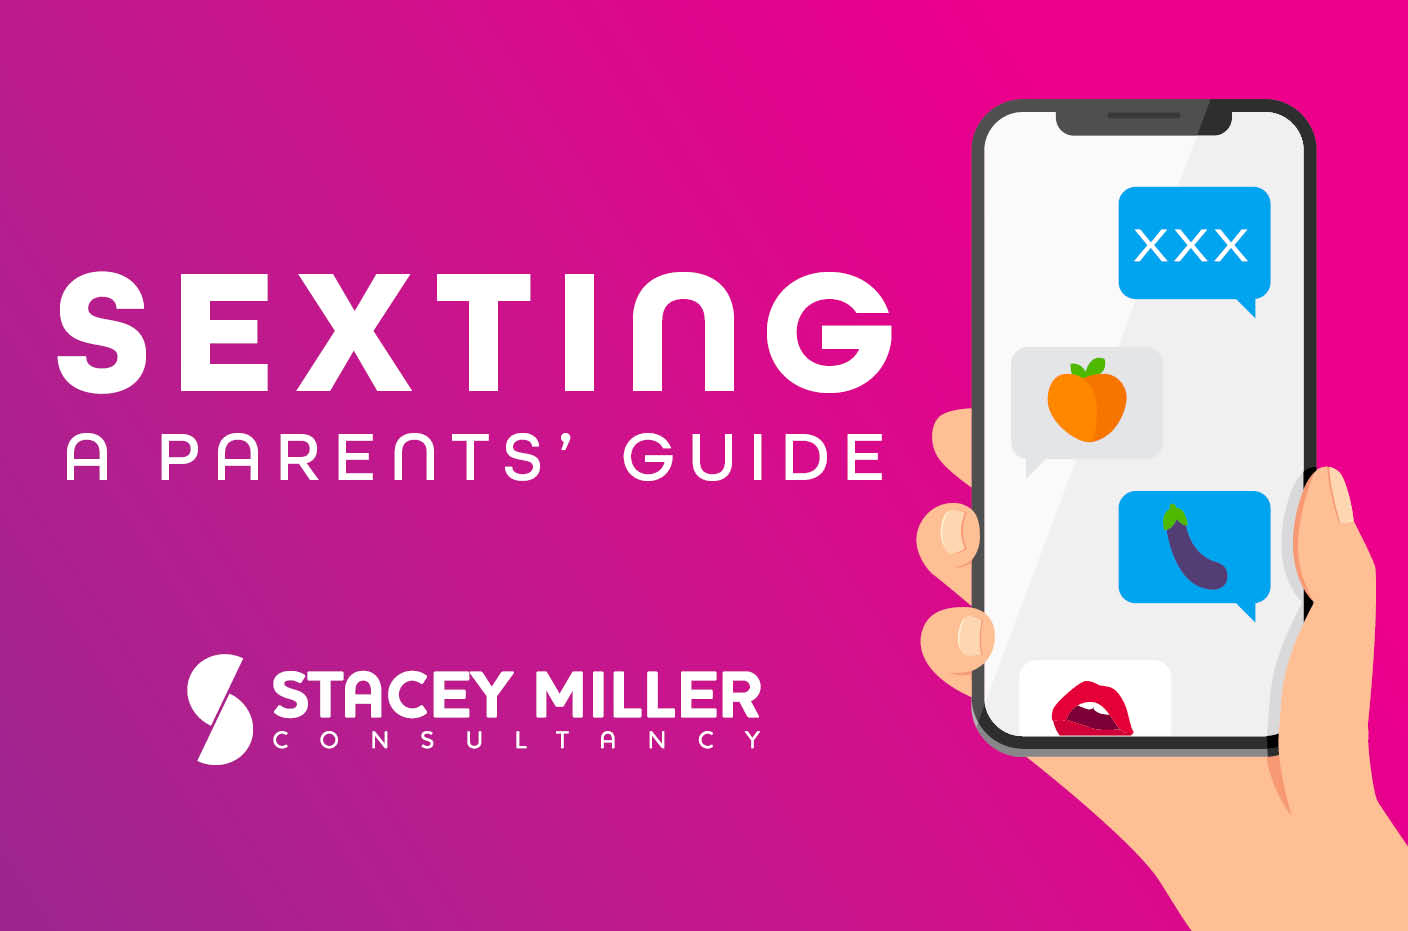 Online Safety For Teens: Sexting, A Parents' Guide